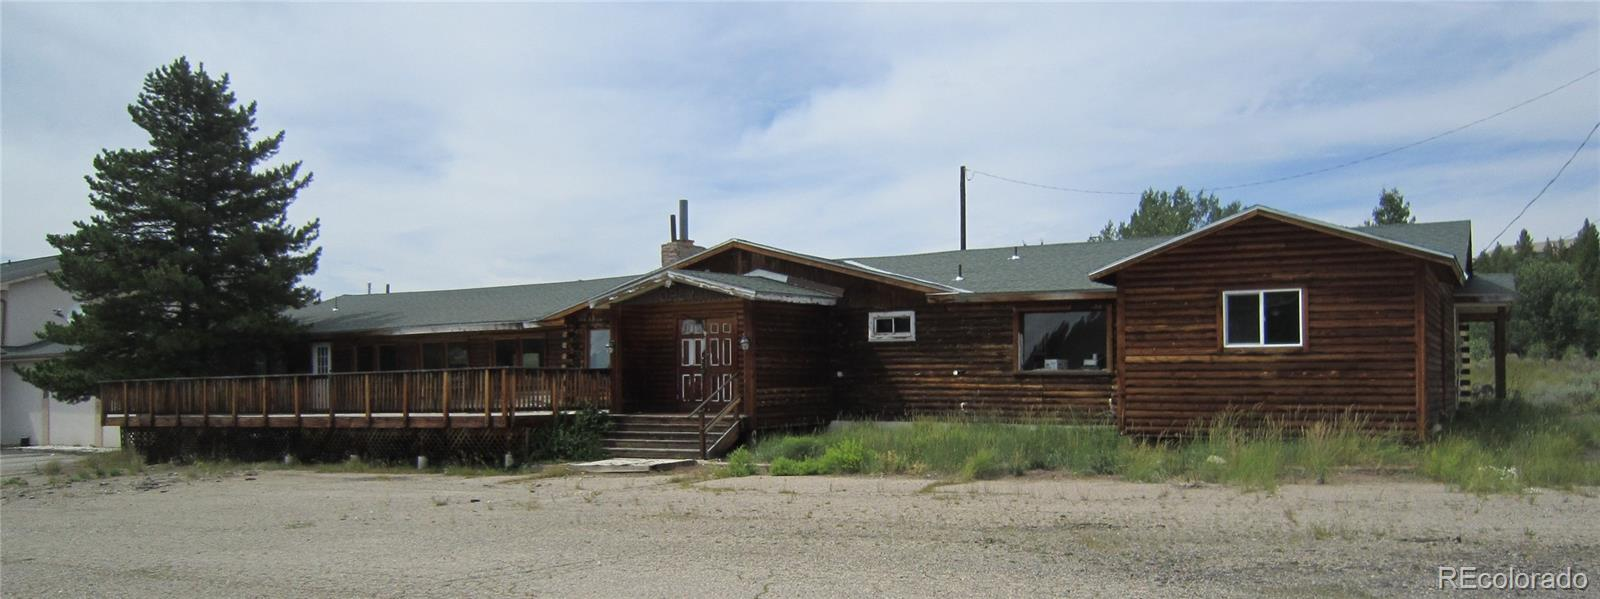 1126 ELM Street Property Photo - Leadville, CO real estate listing